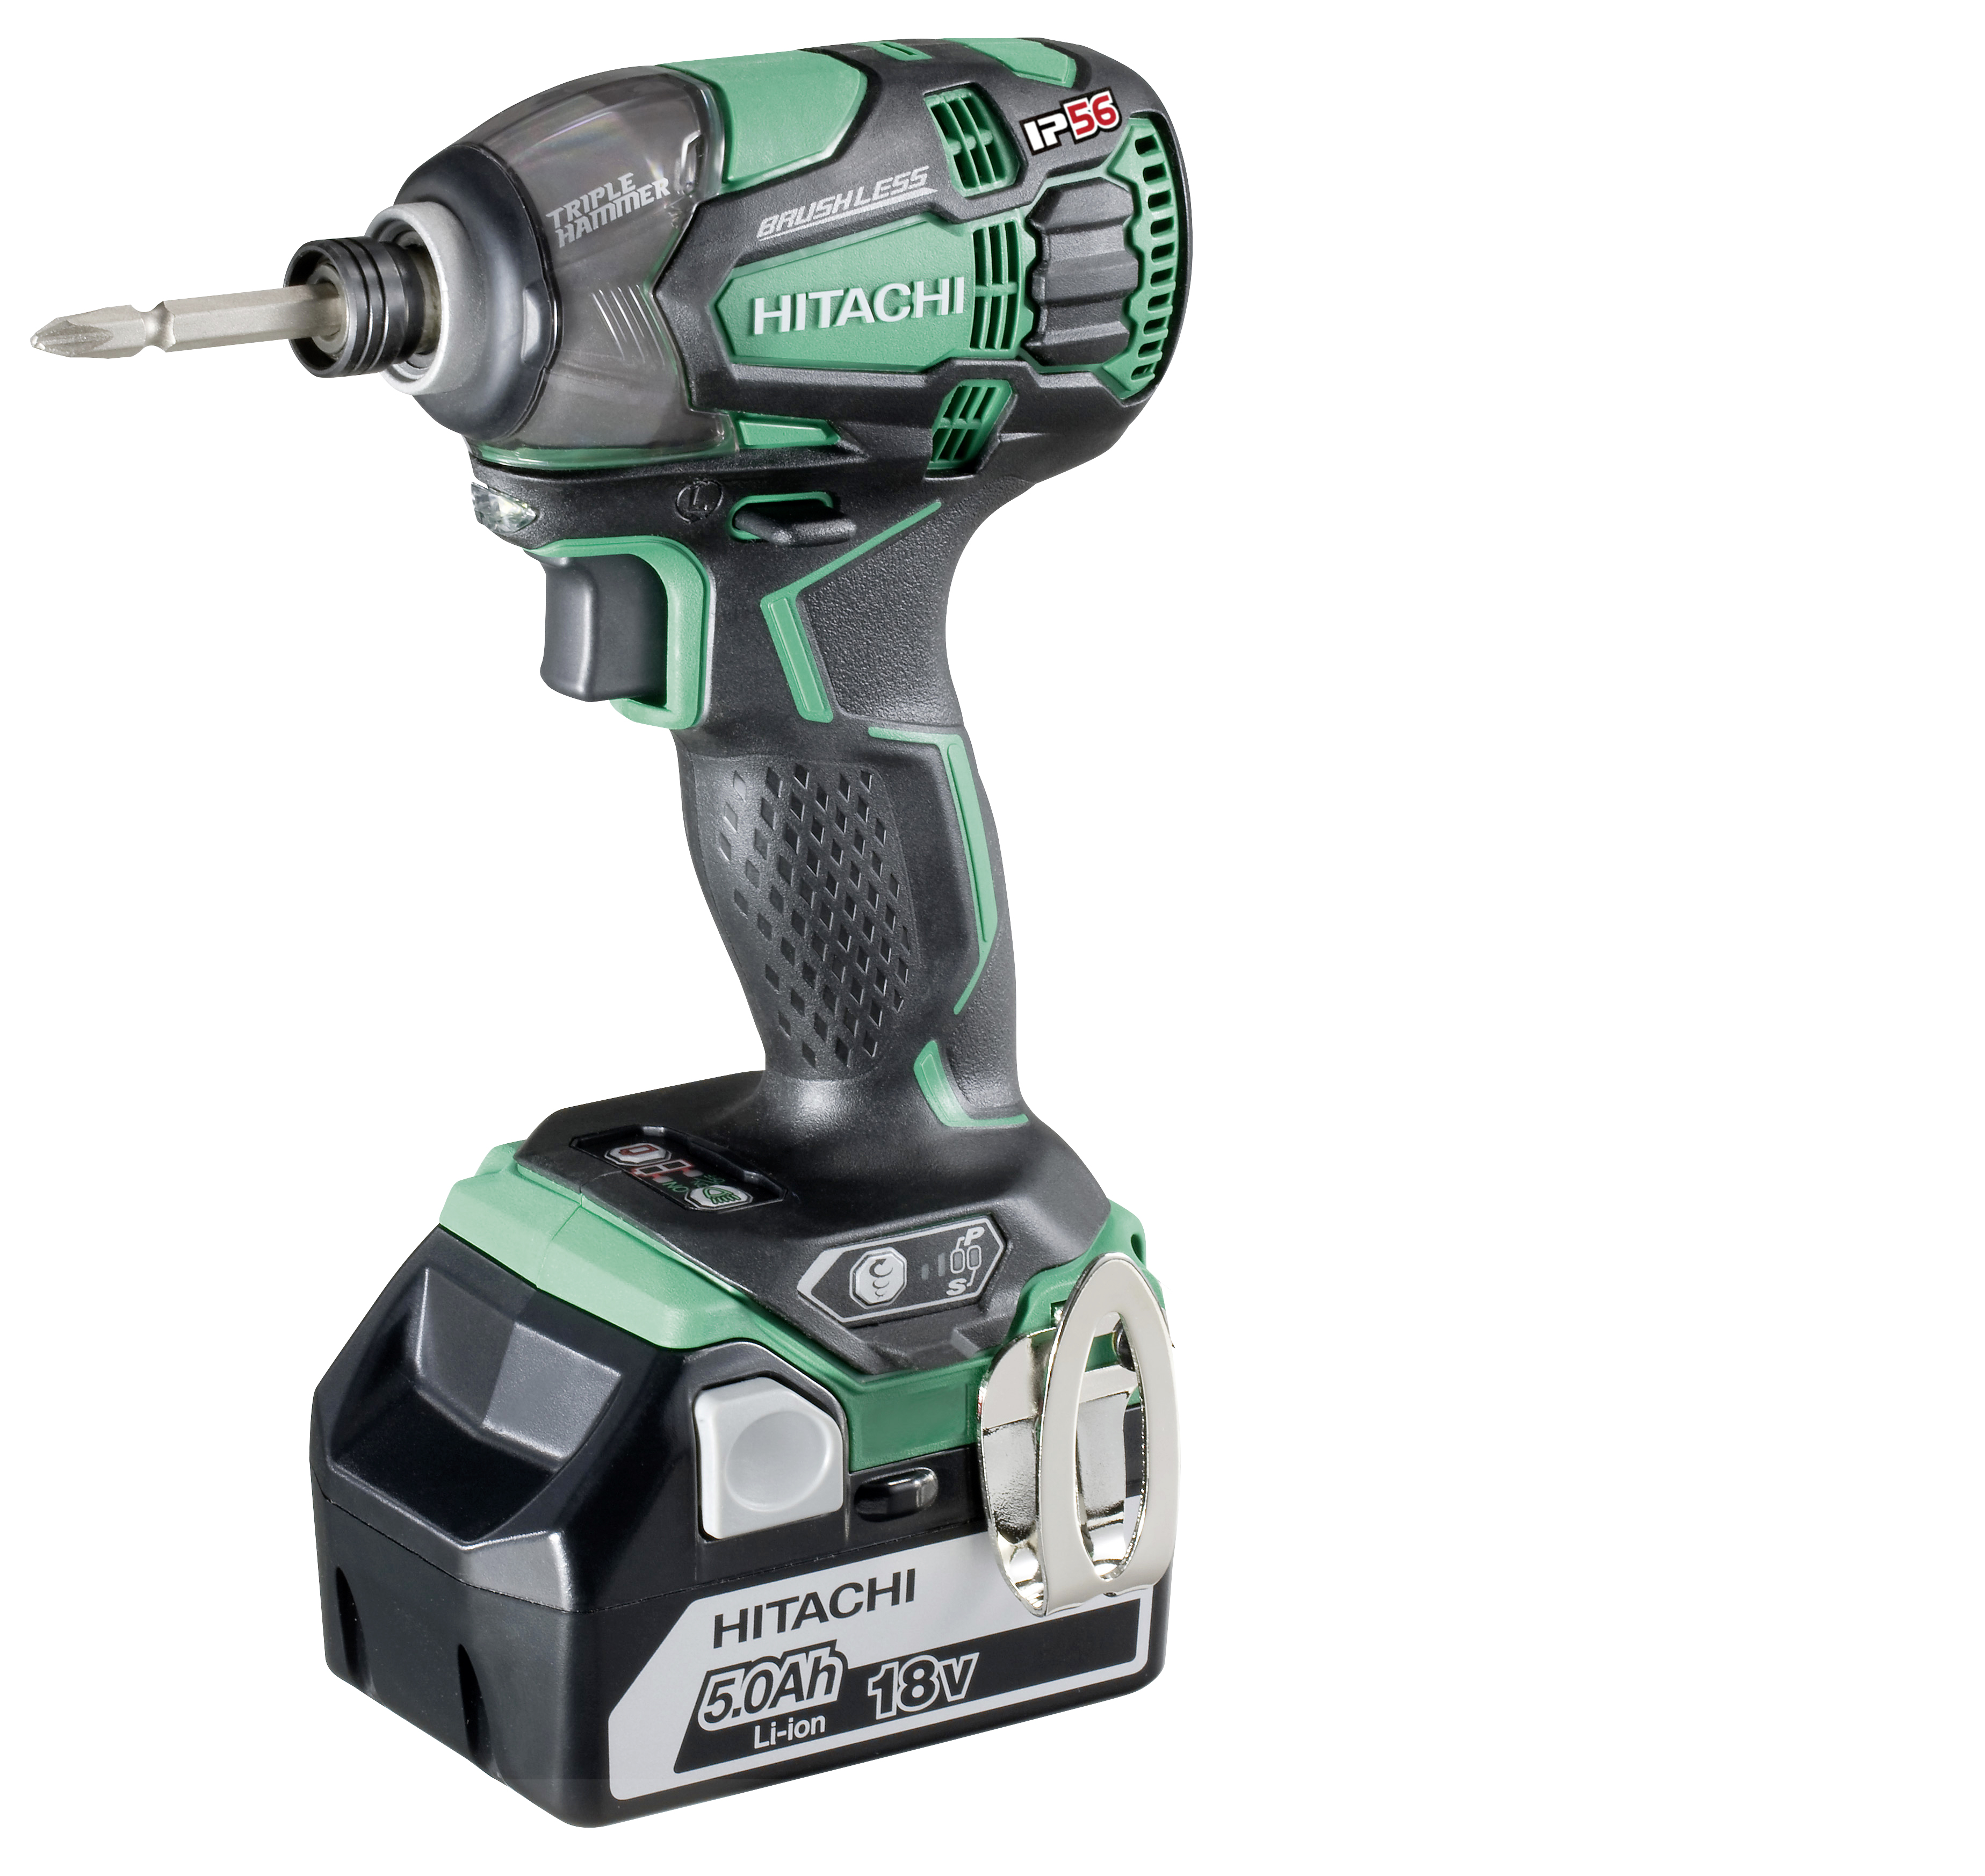 WH18DBDL2-Atonillador-Impacto-18-V-Brushless-5,0-Ah-207-Nw-con-stackable